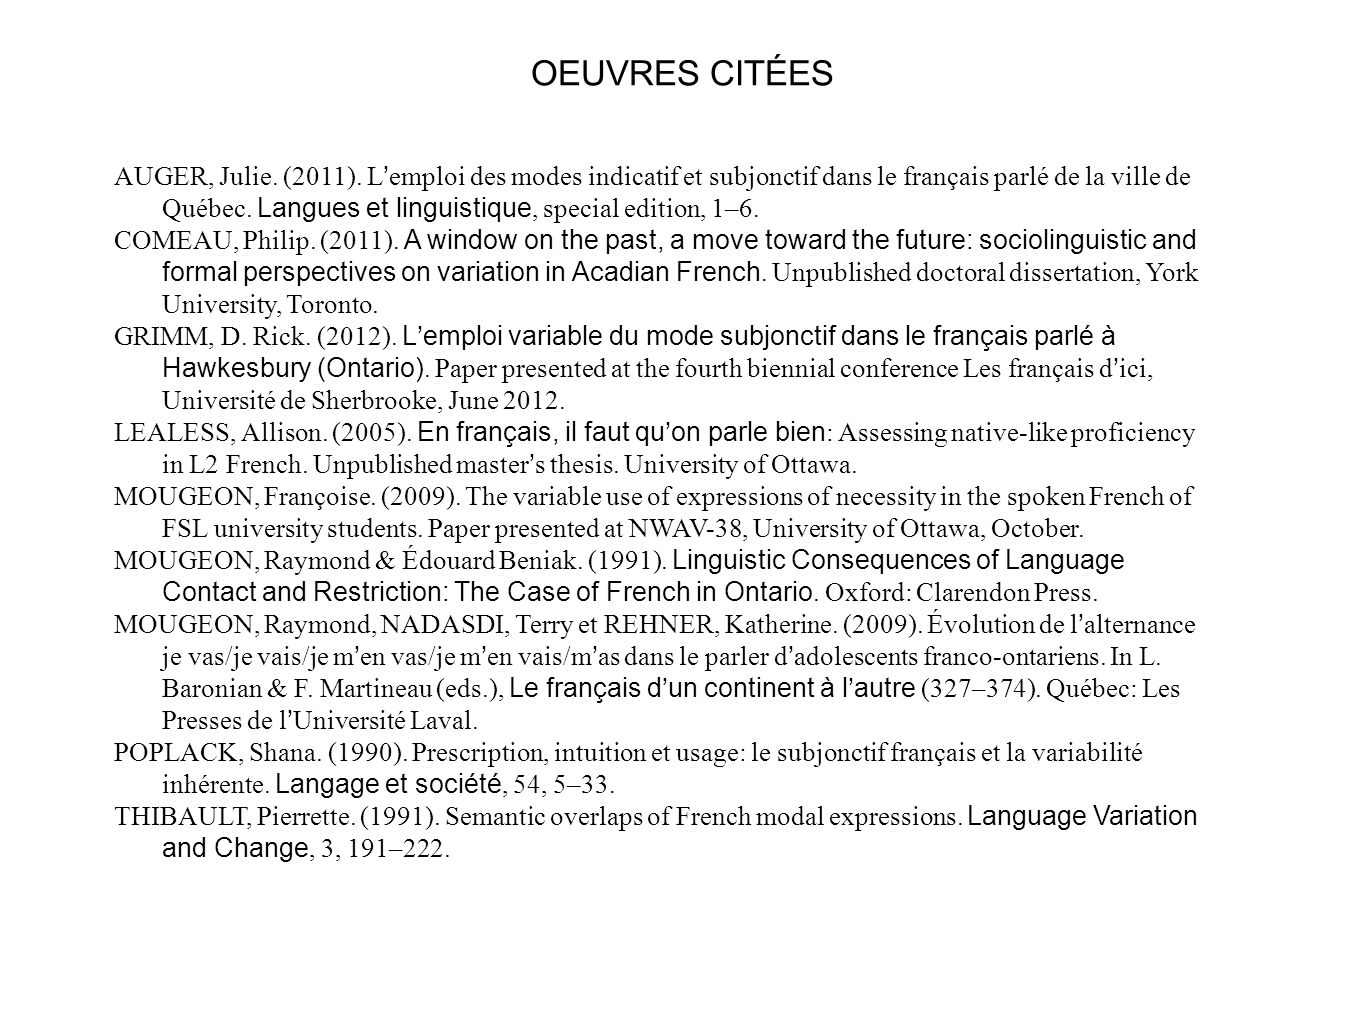 OEUVRES CITÉES